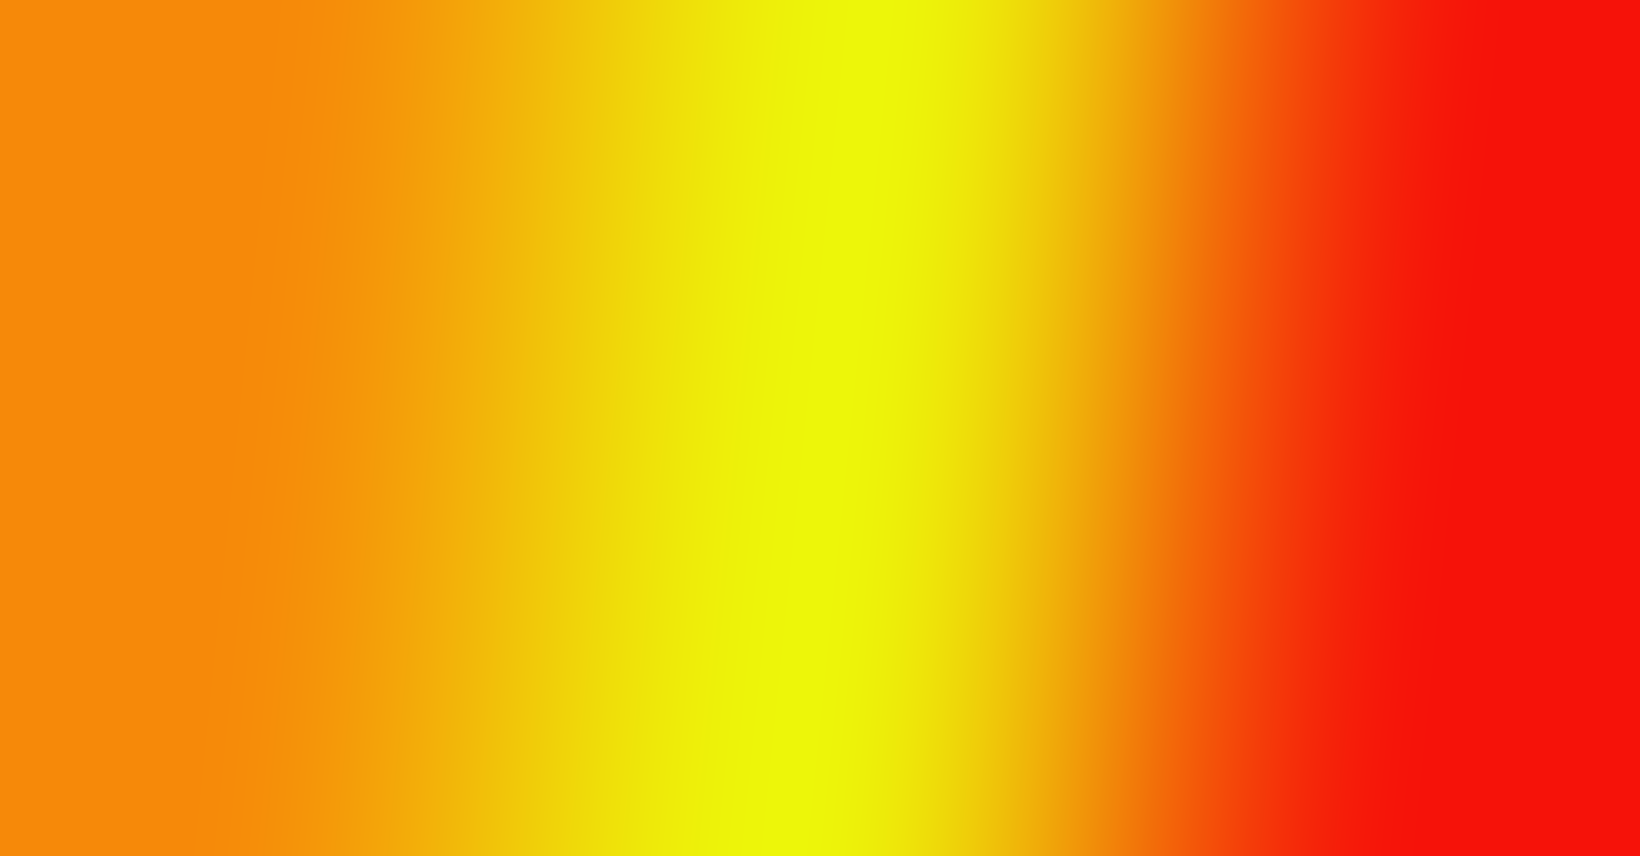 Image showing why highly saturated analogous colors don't work for gradients